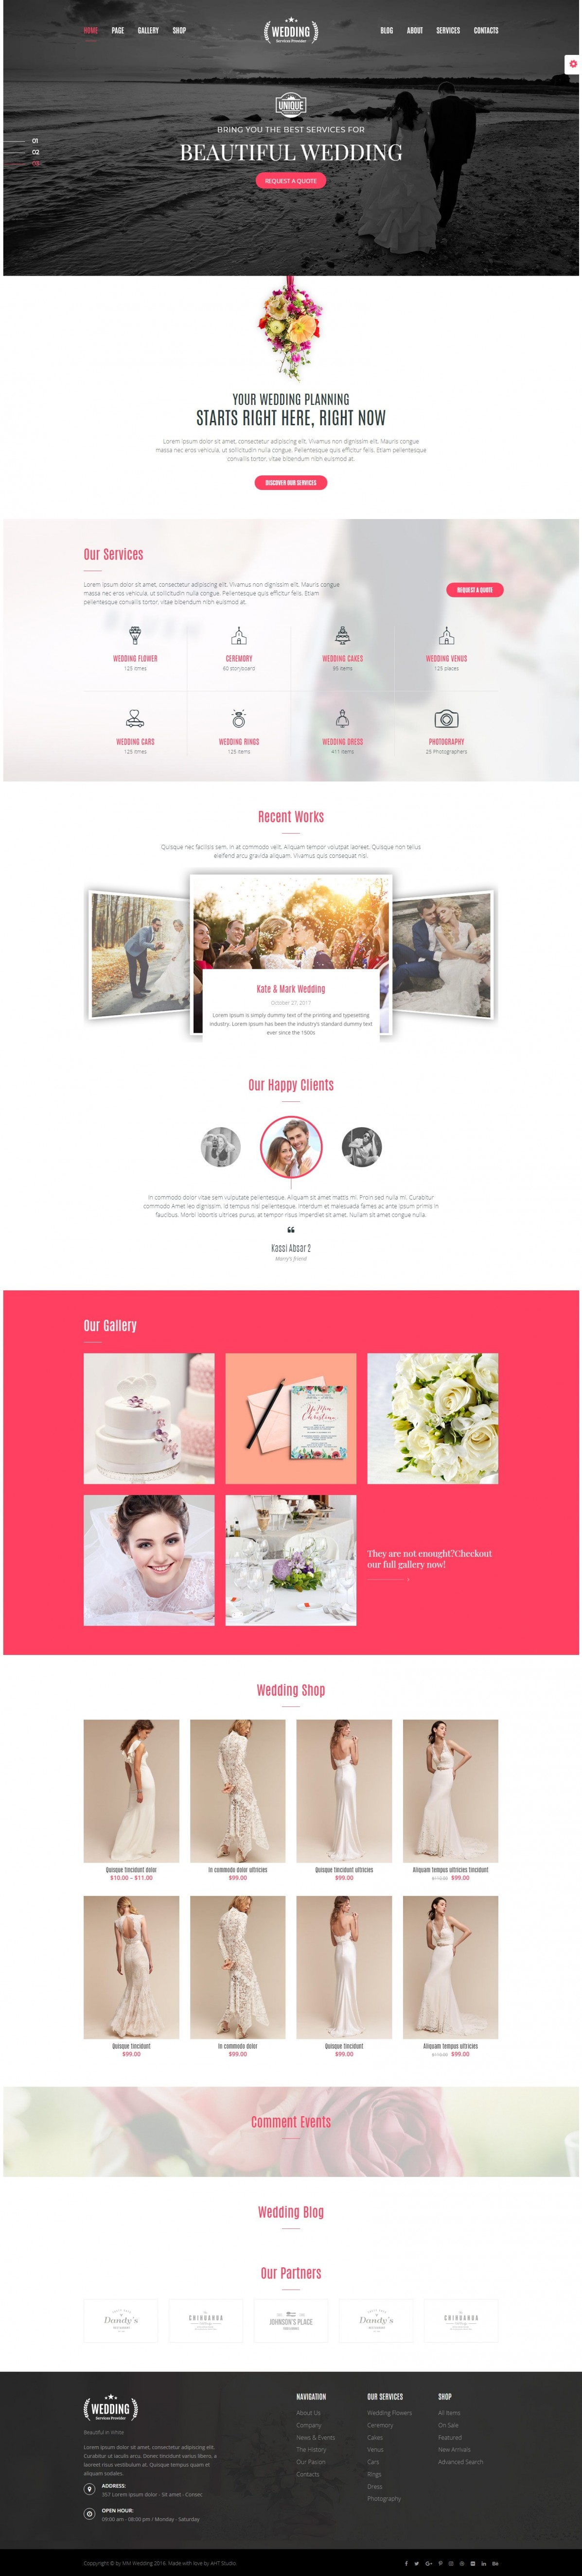 E-commerce, Wedding website WordPress Template